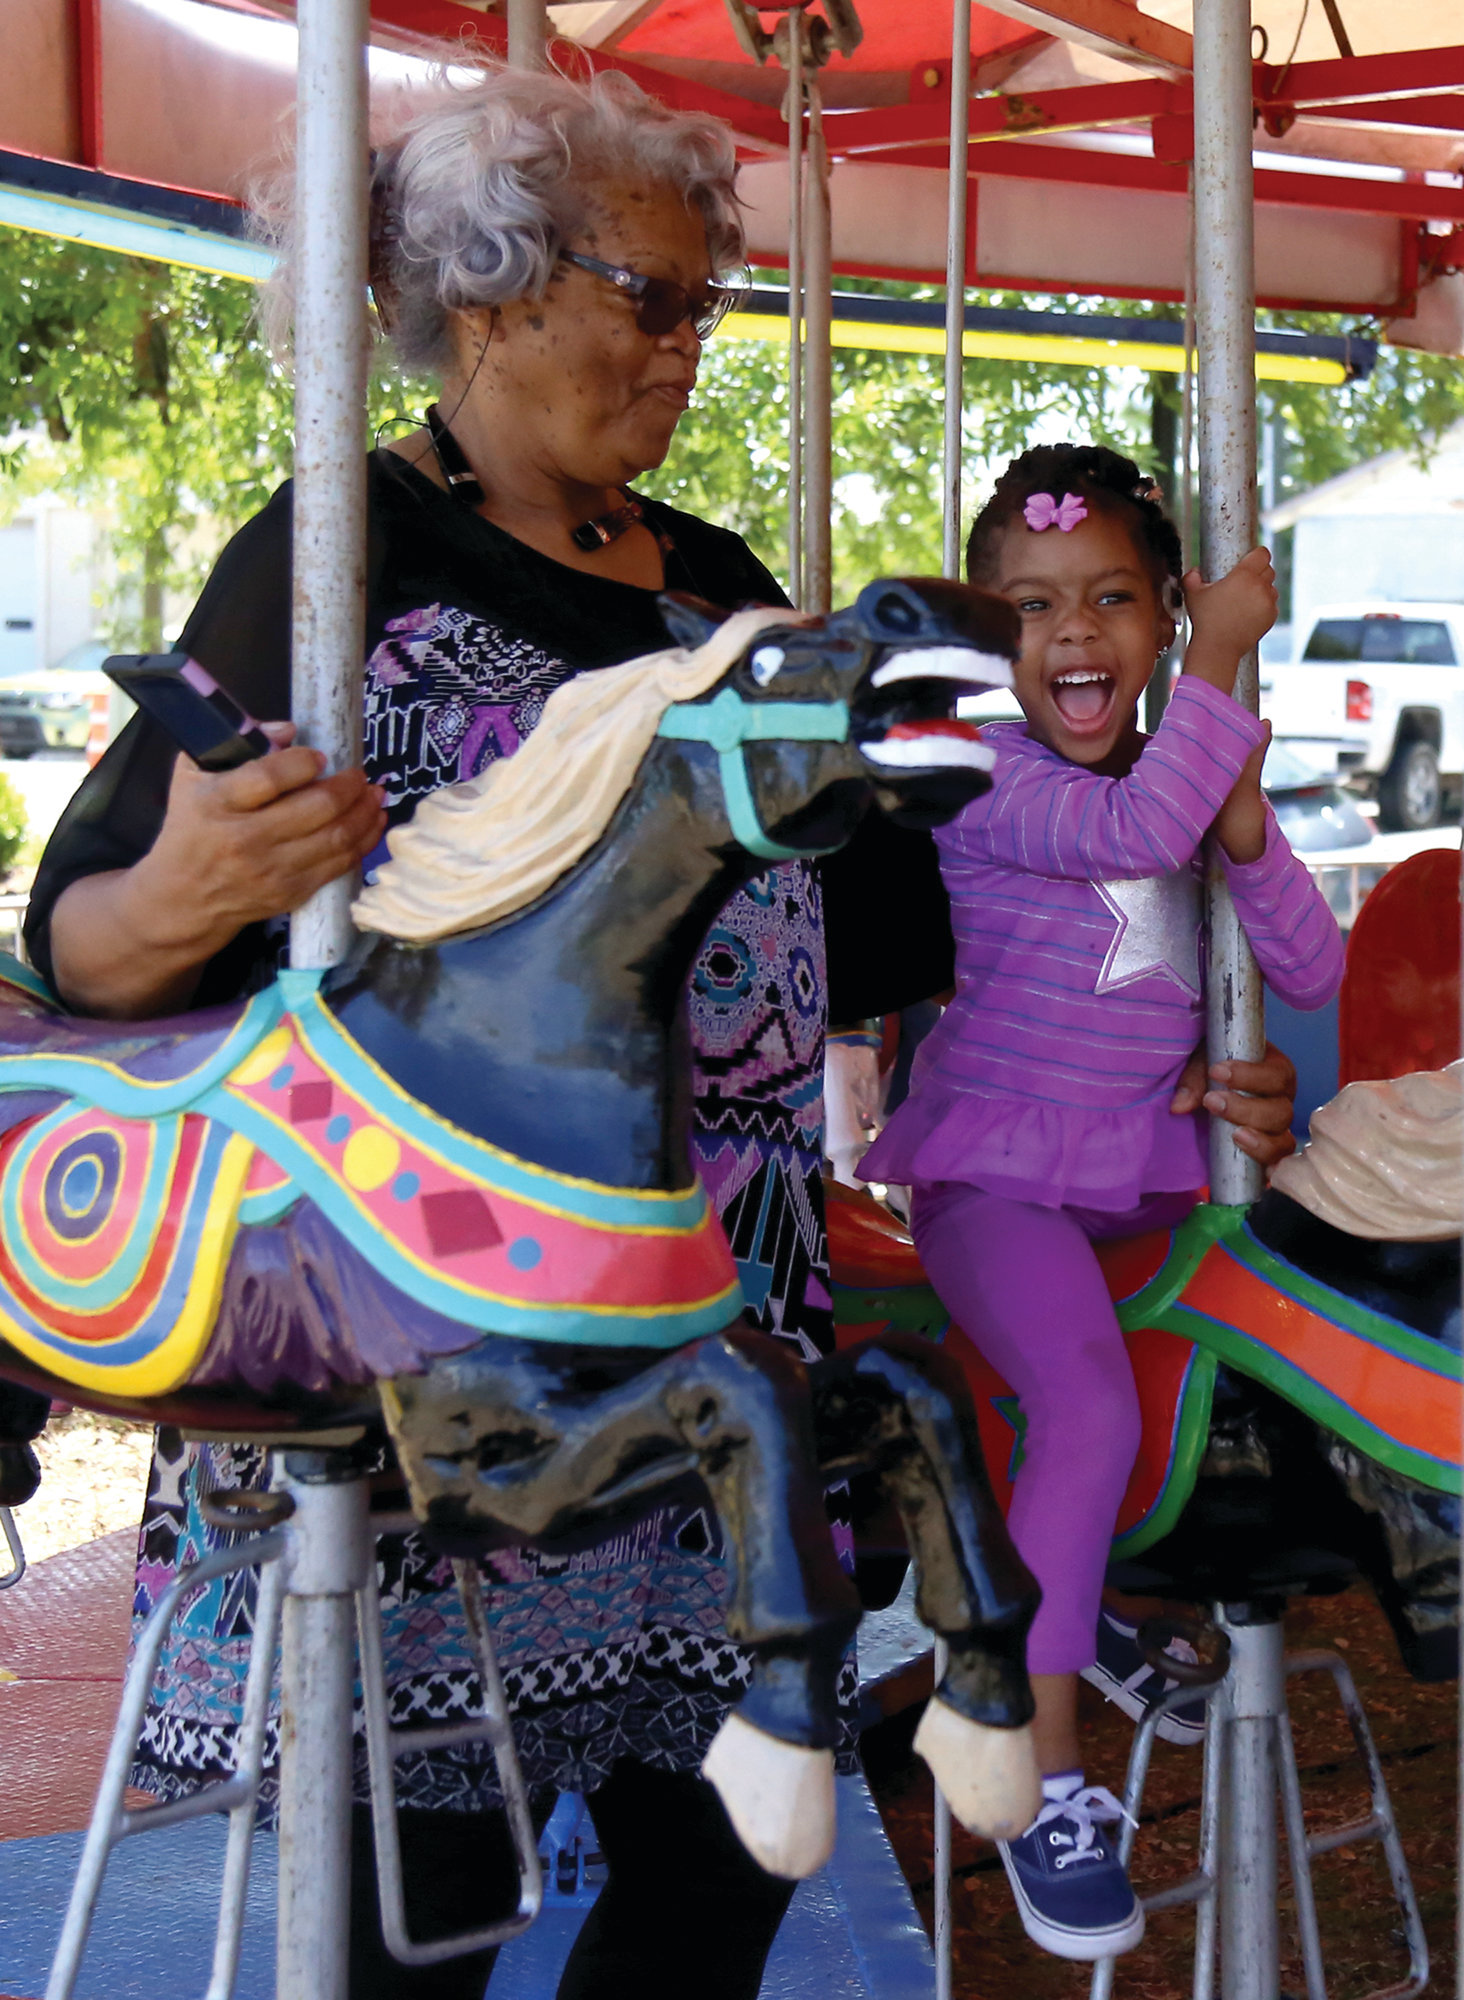 Virginia Lesane, looks on as her granddaughter, Chloe Lesane,4,laughs as she rides the carousel at the Puddin Swamp Festival on Saturday in Turbeville.